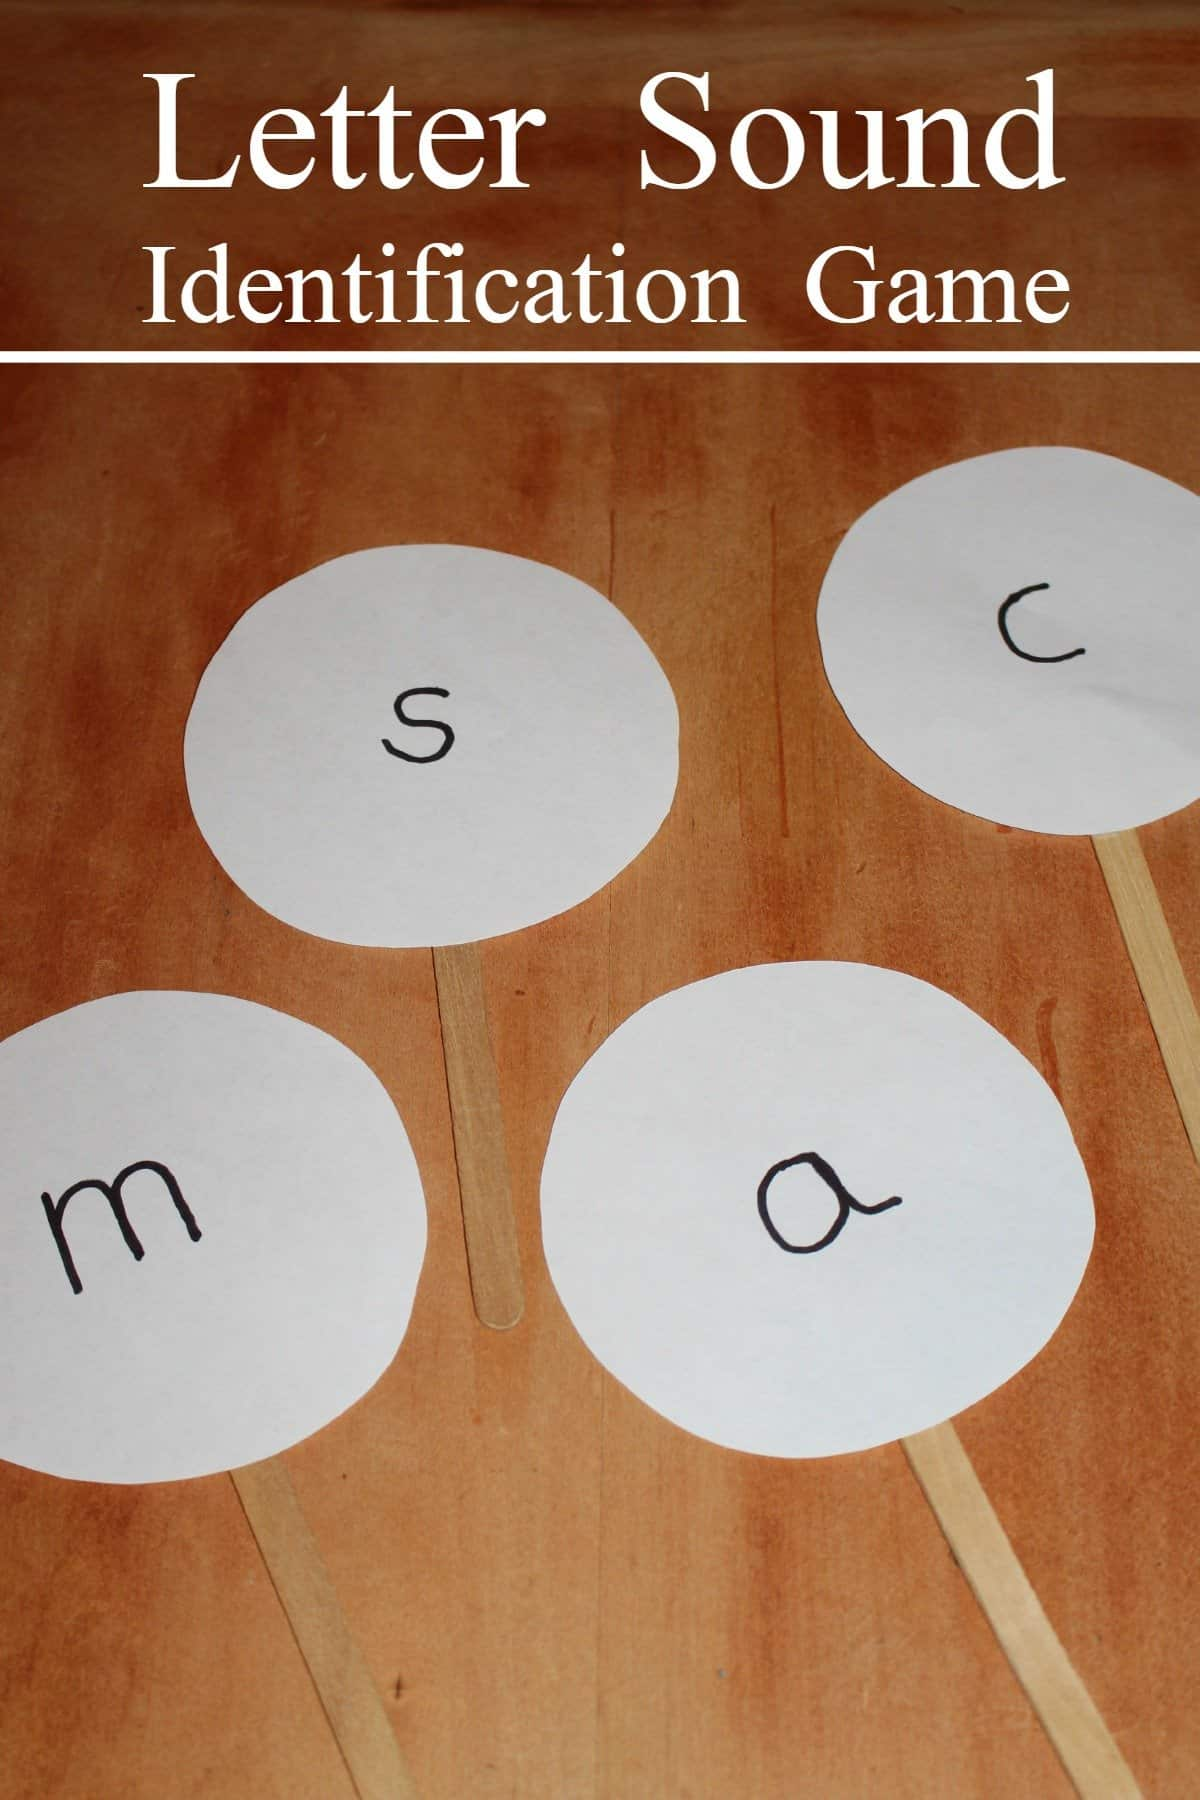 Letter Sound Identification Game Activity For Kids 1